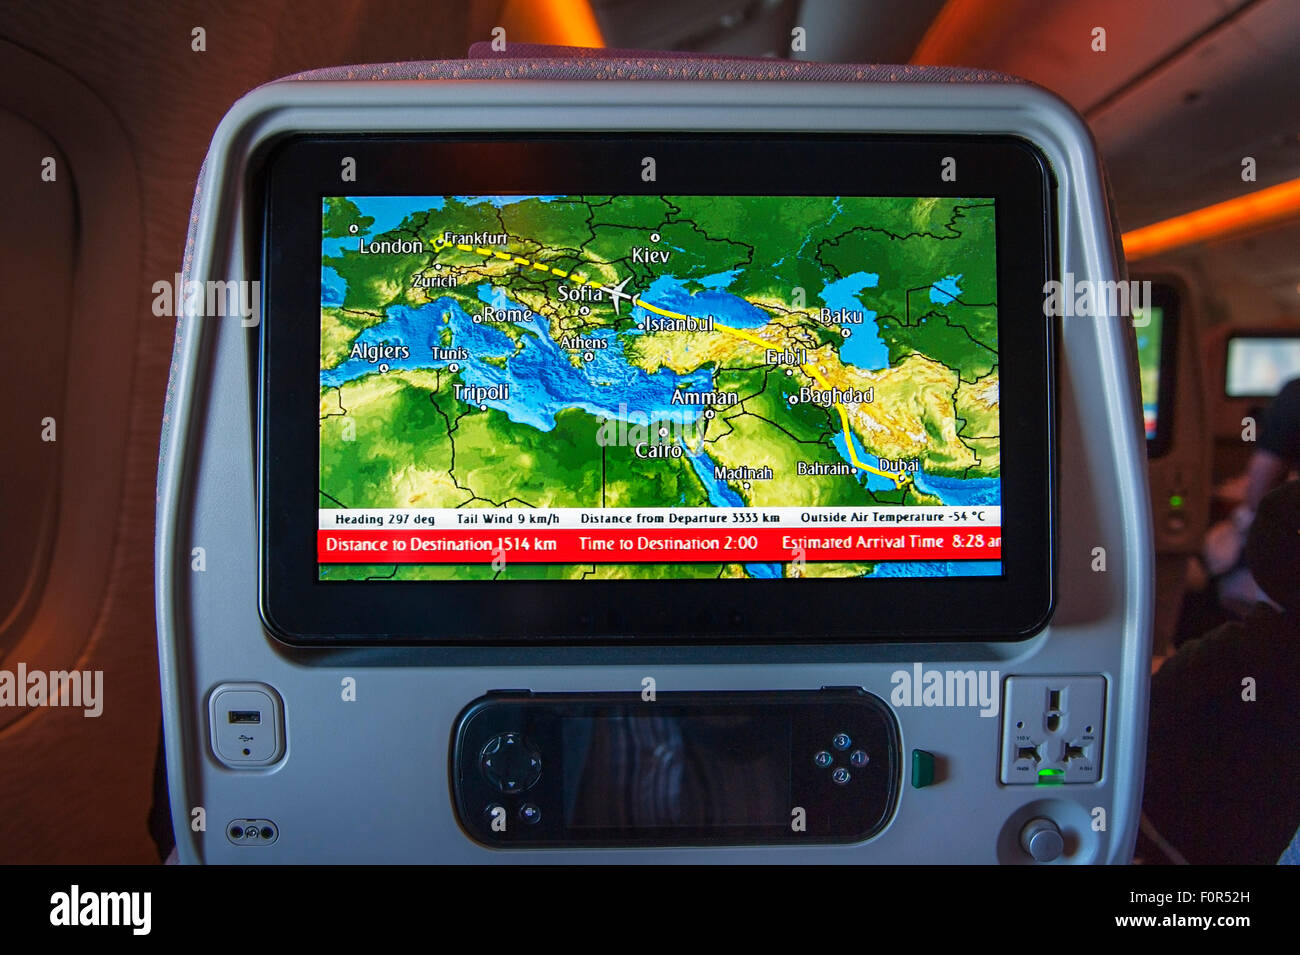 Boeing 777-300, entertainment system, screen in the passenger compartment, economy class, Dubai-Frankfurt - Stock Image